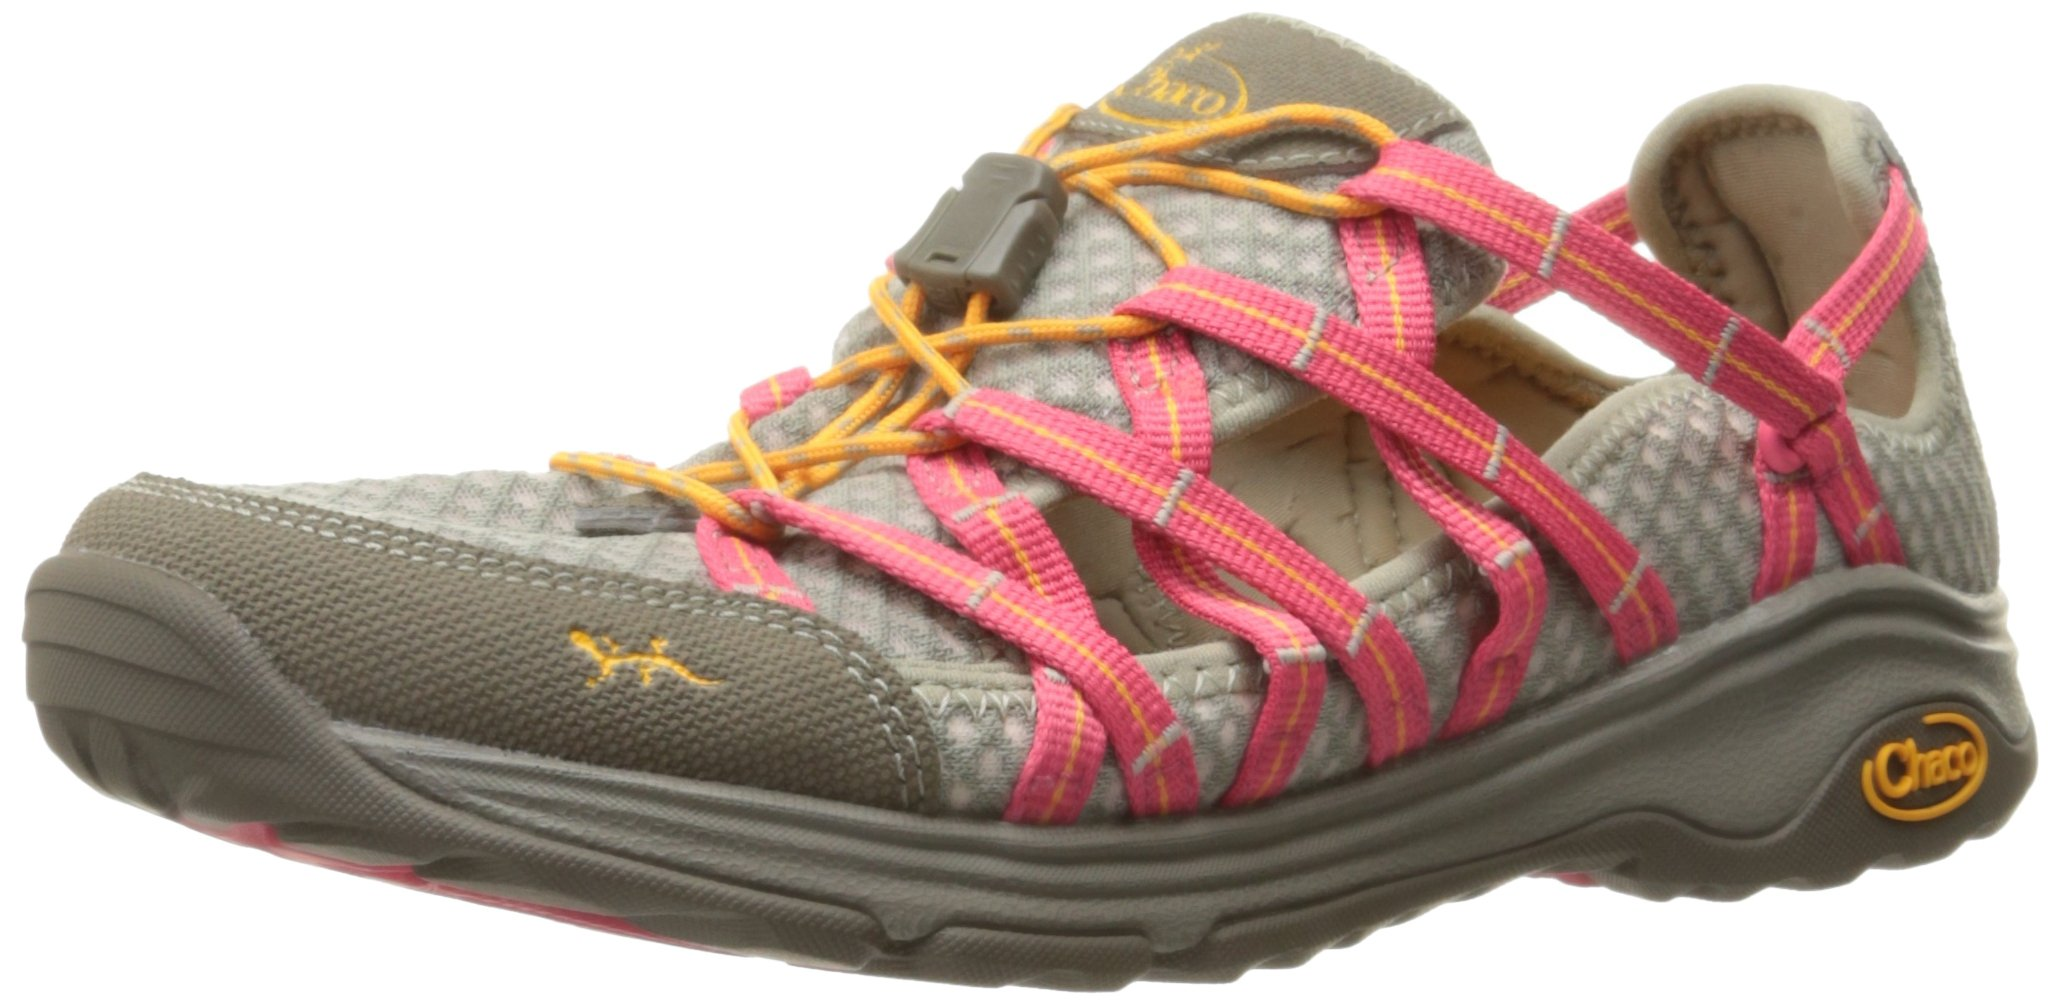 Chaco Women's Outcross Evo Free Sport Water Shoe, Rouge, 10 M US